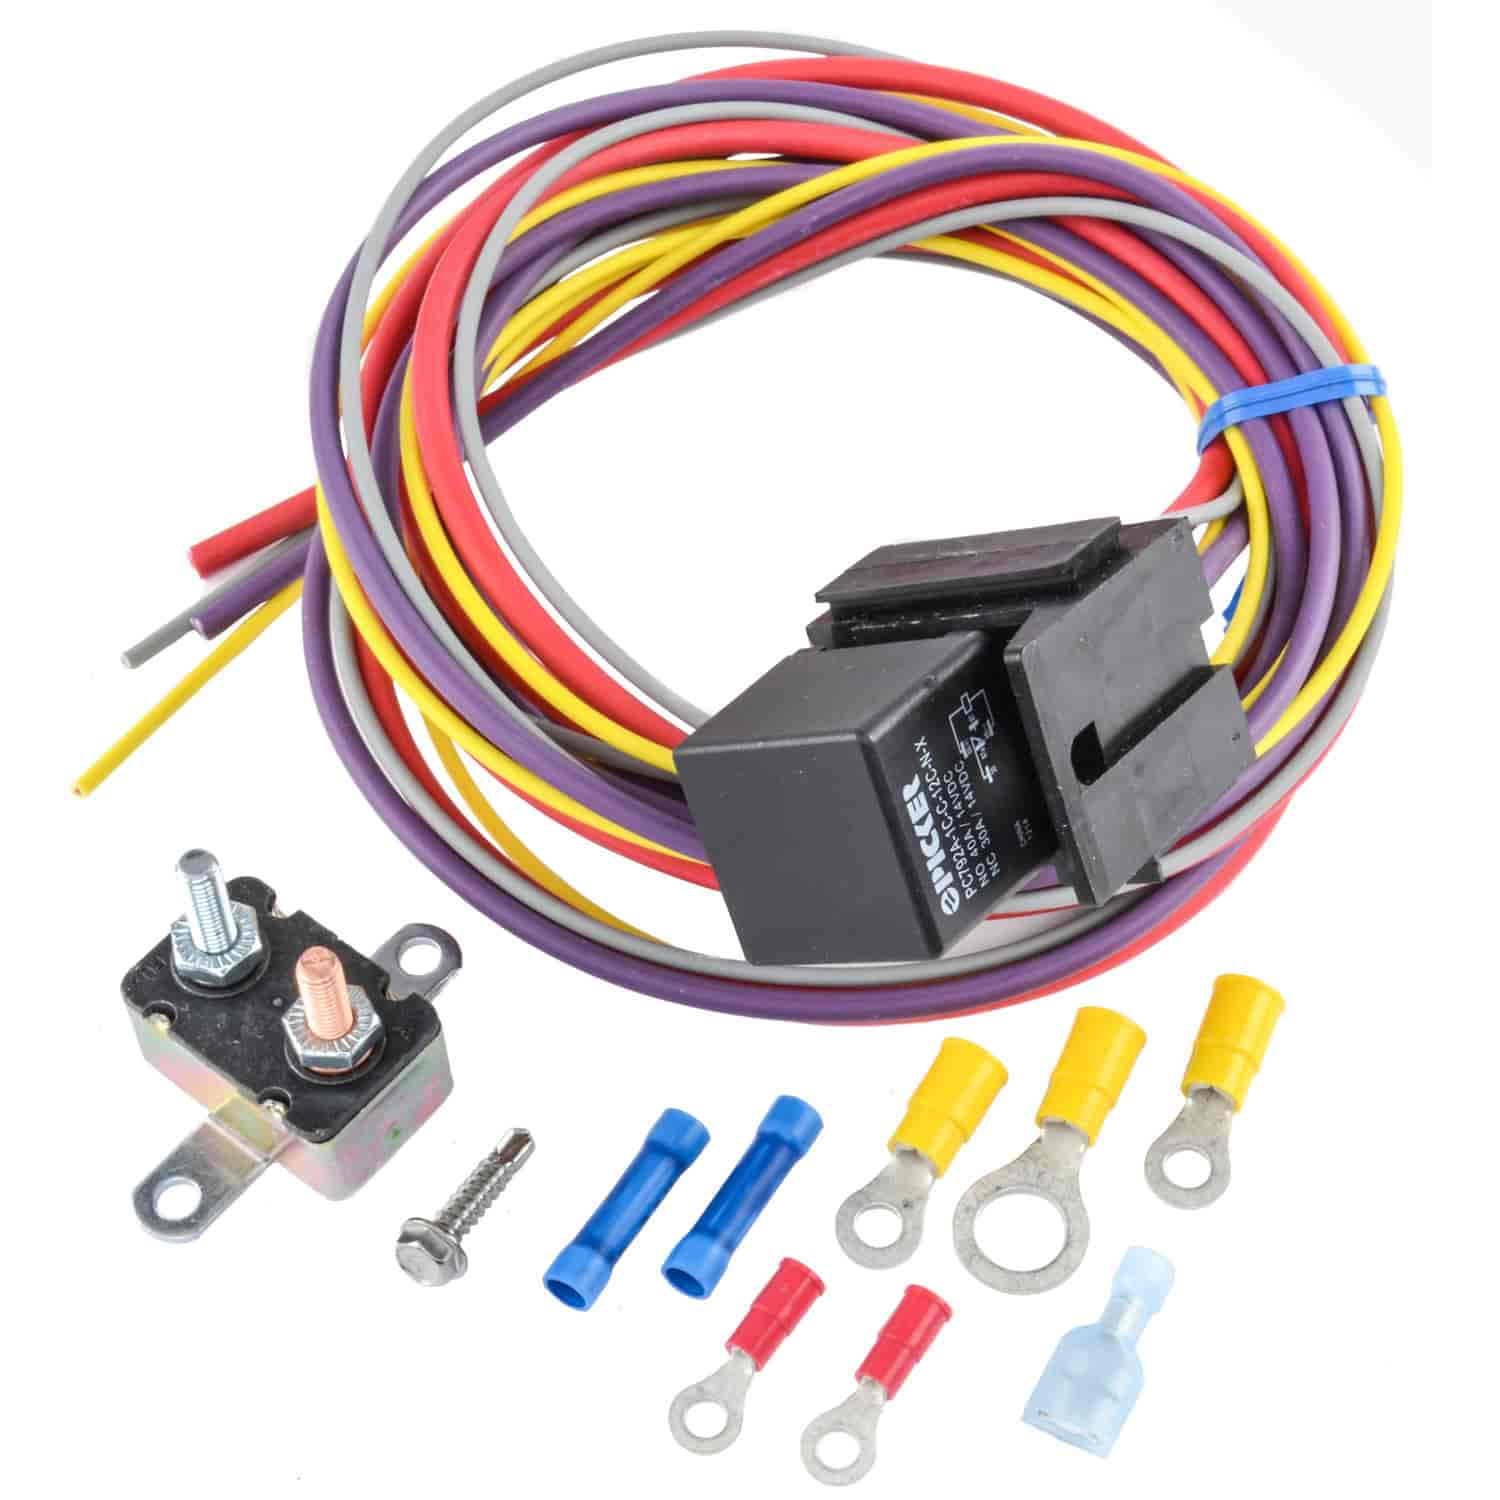 555 10559 jegs performance products 10559 manual controlled single fan jegs universal wiring harness at soozxer.org